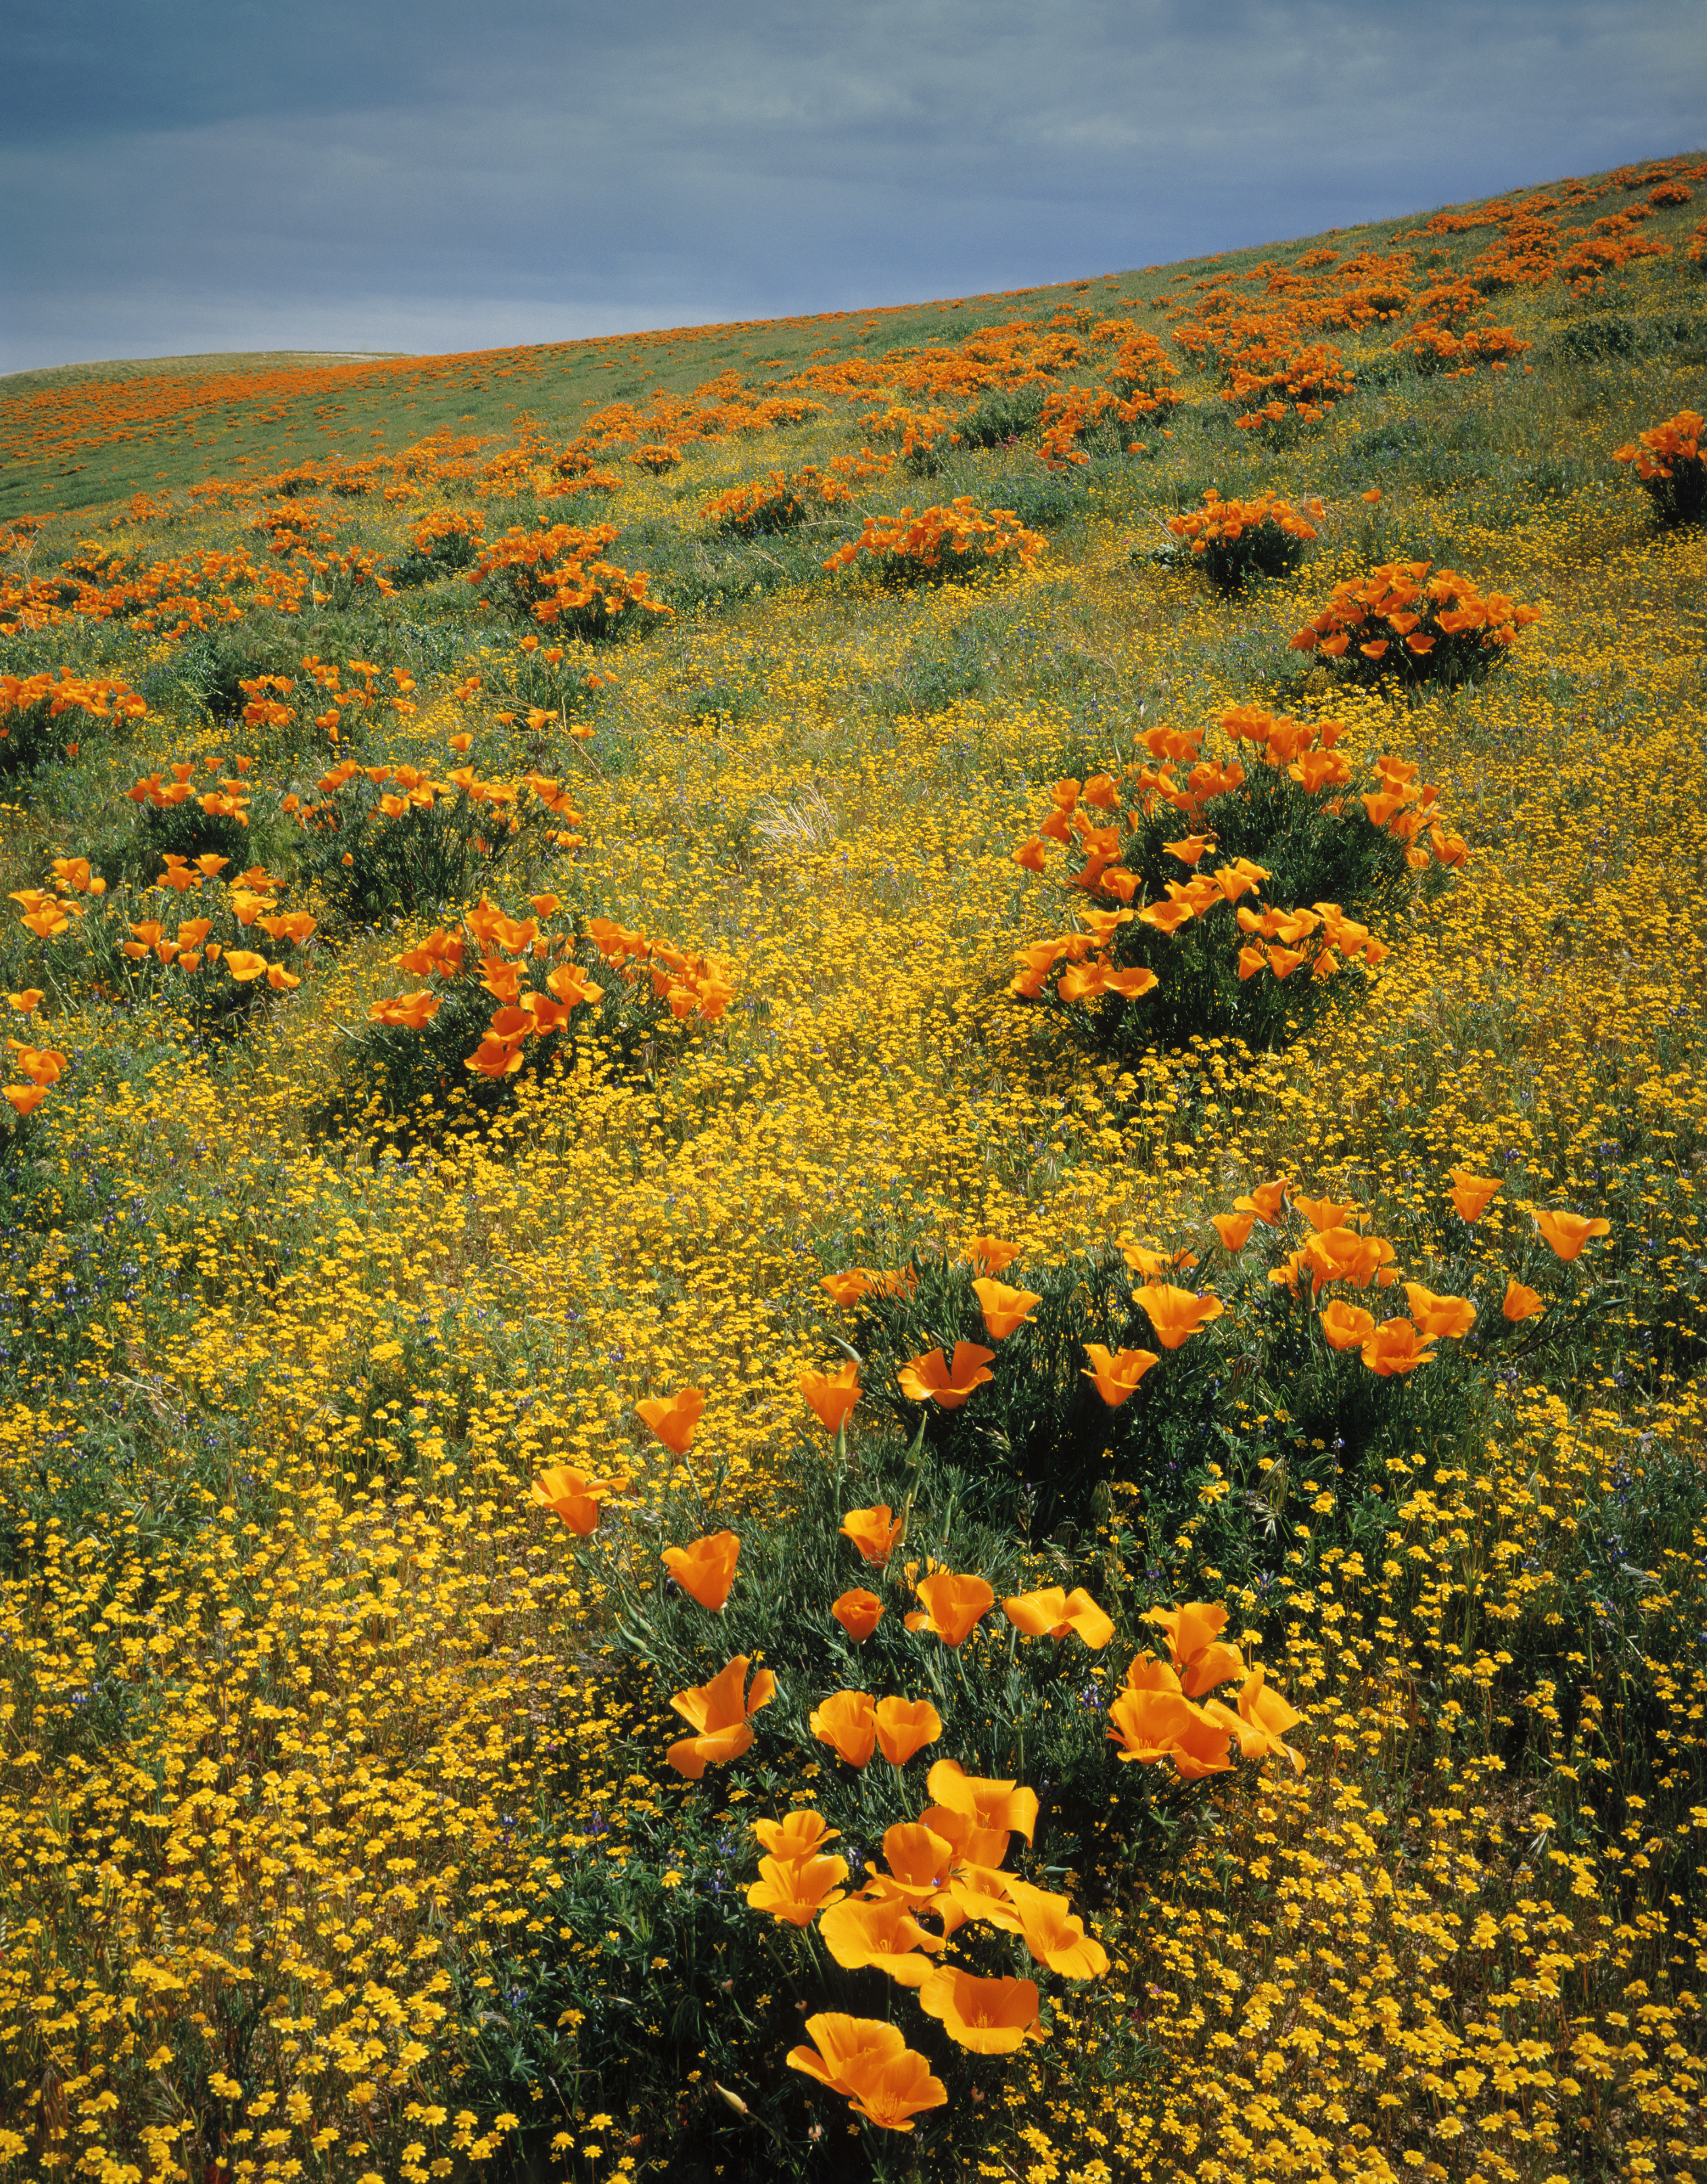 California poppies among goldfields california pictures california state flower poppy the flame flower la amapola cops de mightylinksfo